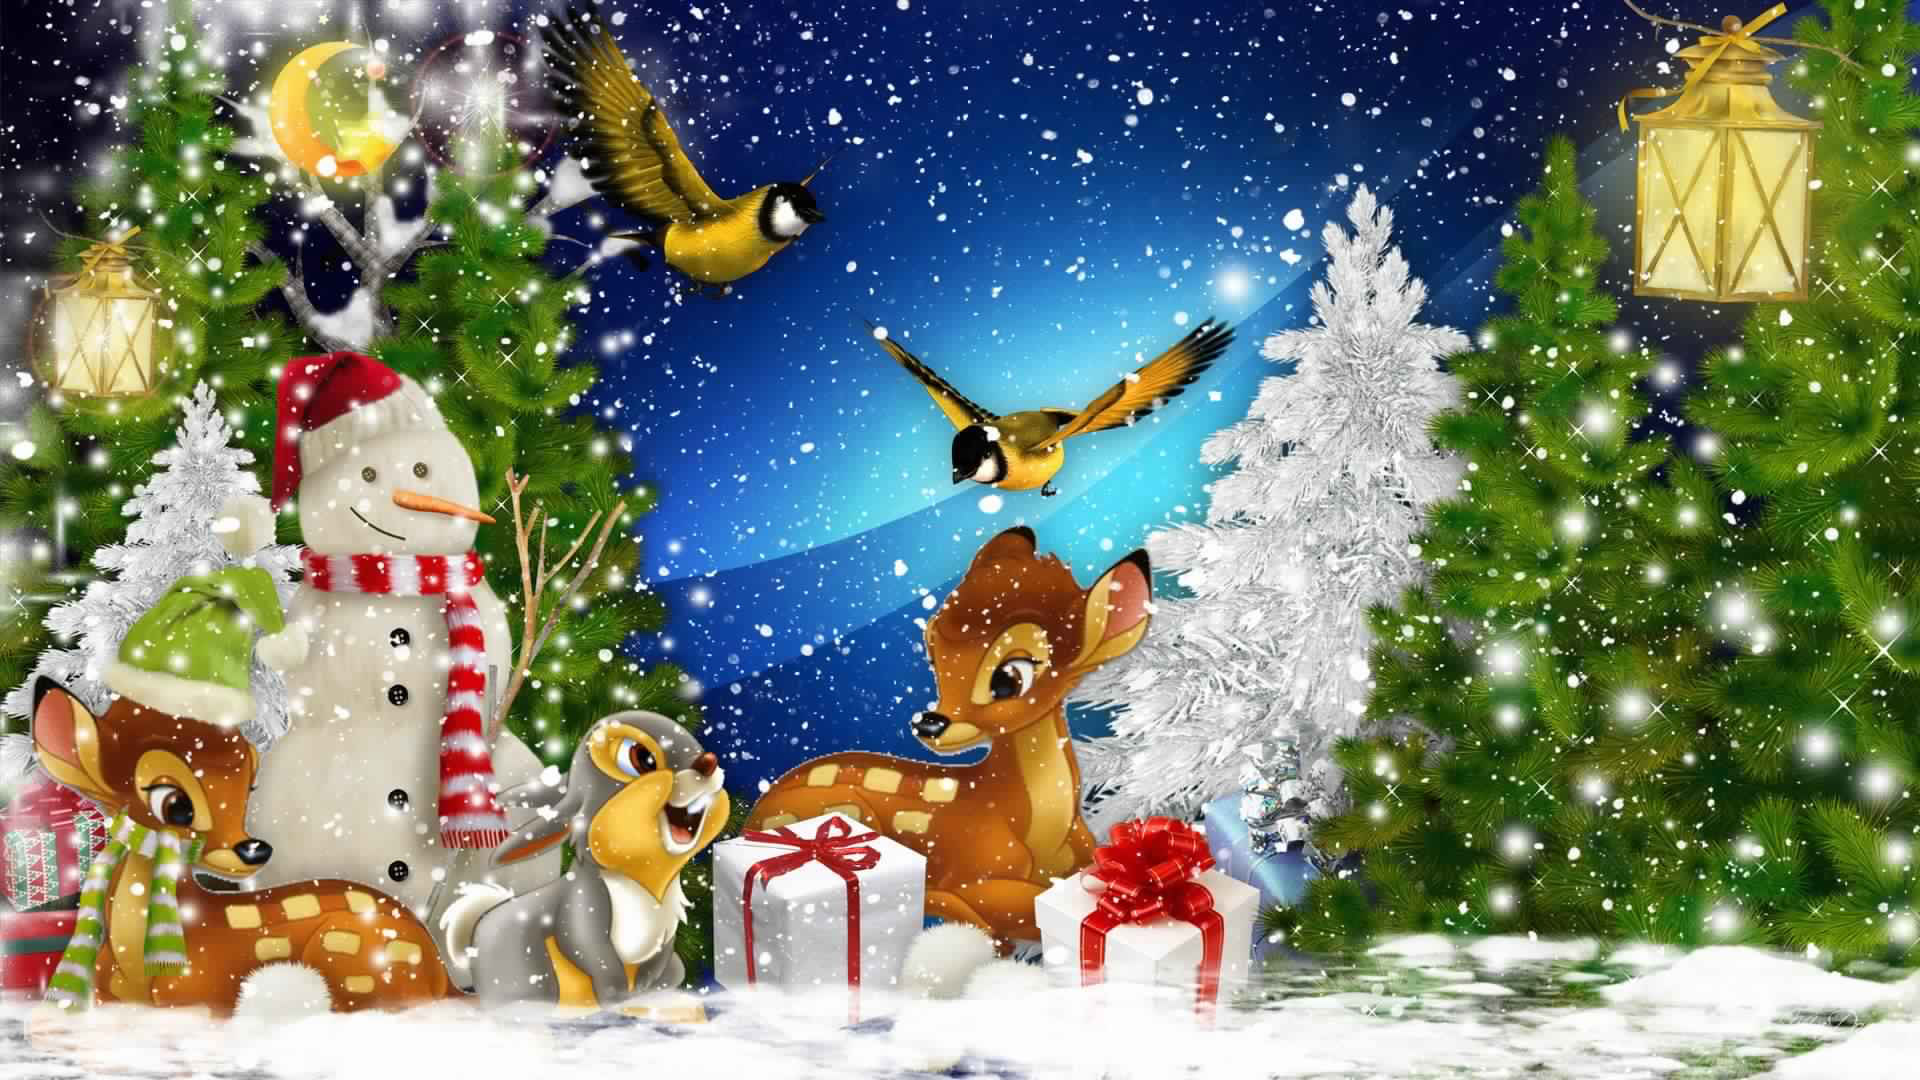 Santa Winter Bambi Thumper Christmas Snowy Snowman Birds Deer Trees Bunny Snow Gifts Winter Rabbit Wallpaper Pictures Hd